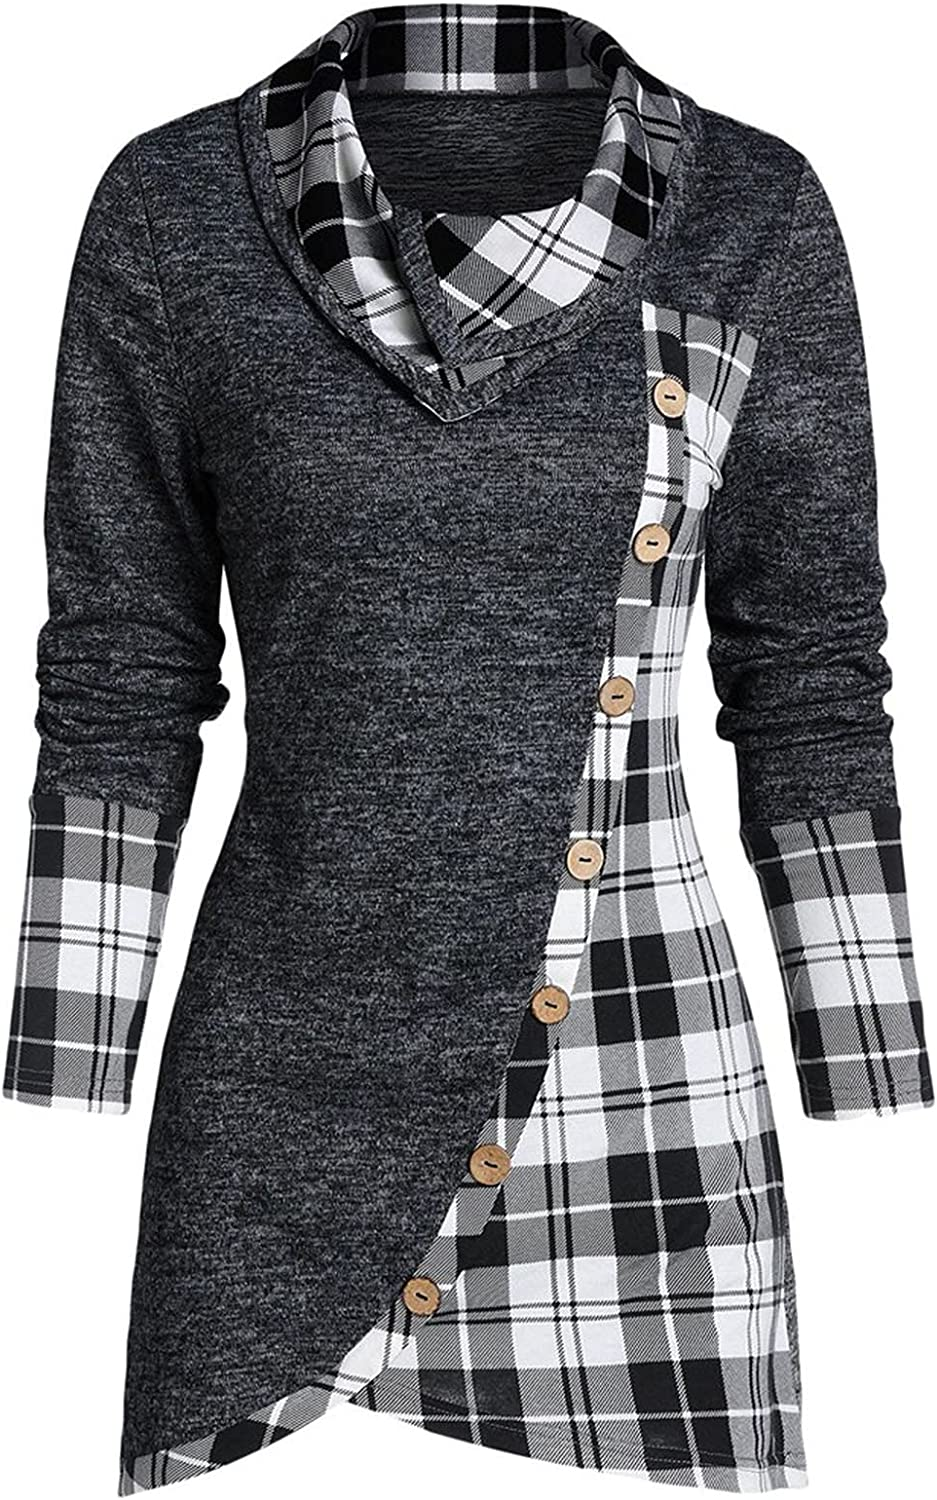 Womens Casual Tops Pliad Patchwork Slim Long Sleeve Tshirts High Neck Button Trendy Pullover Vintage Elegant Blouse